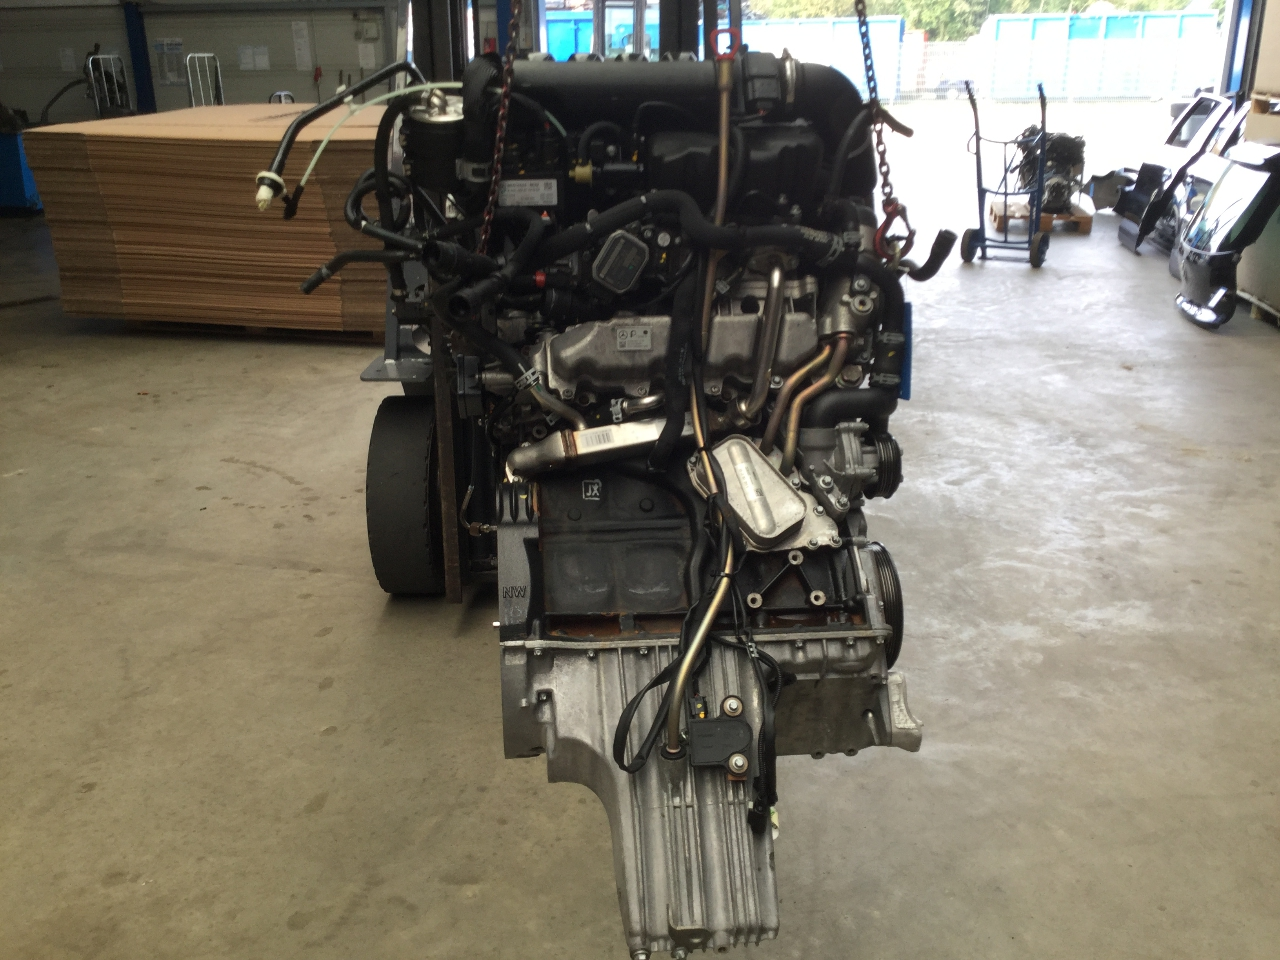 motor moteur engine mercedes benz a class w169 a 180 cdi 80 kw 109 p ebay. Black Bedroom Furniture Sets. Home Design Ideas